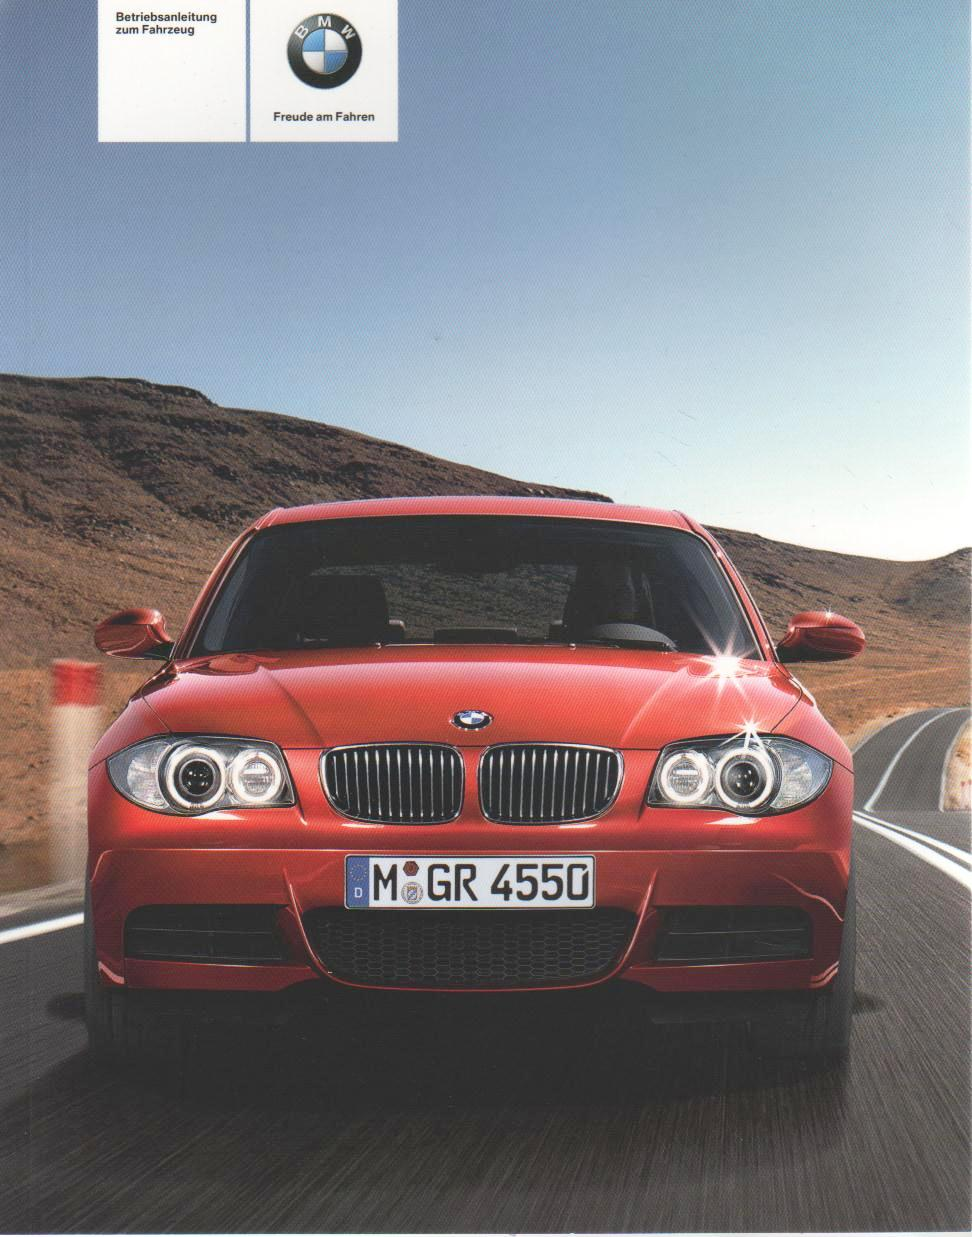 bmw 1er cabrio coupe 2008 betriebsanleitung e88 e82 handbuch ba ebay. Black Bedroom Furniture Sets. Home Design Ideas